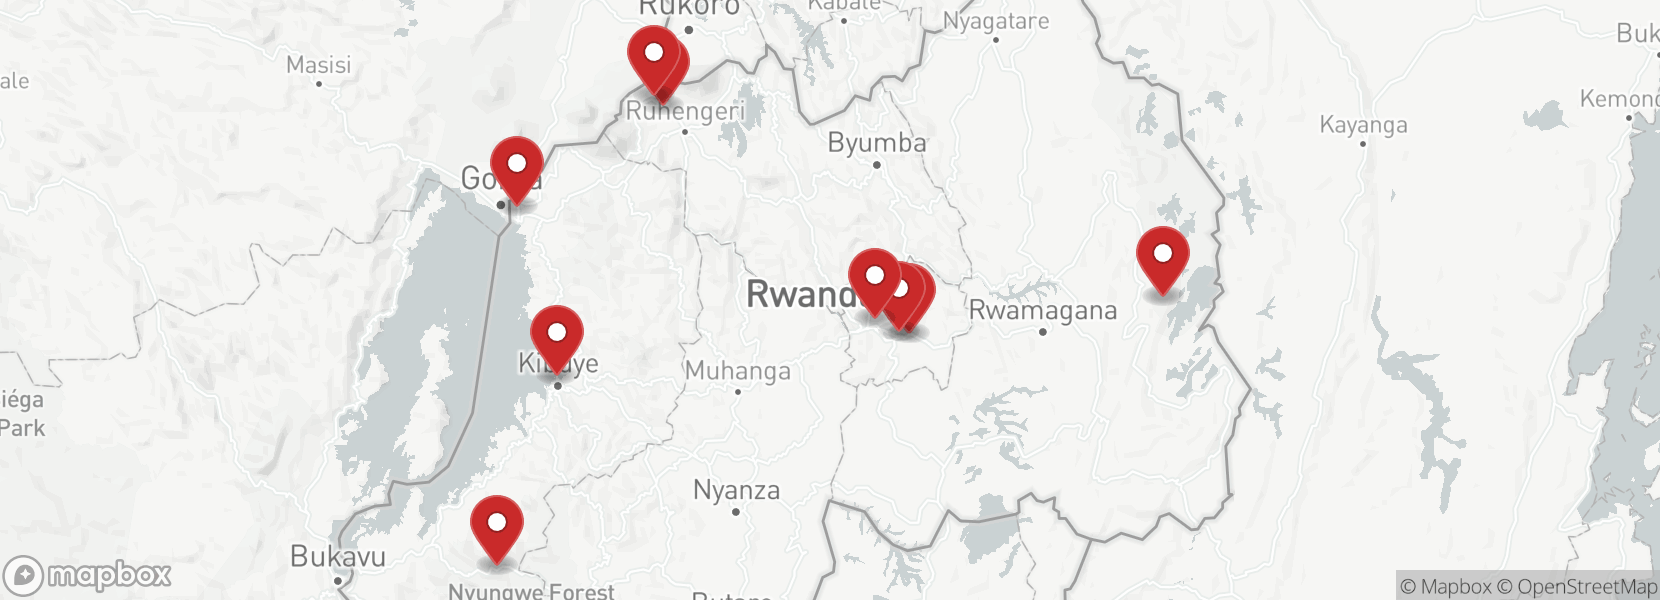 Itinerary Motorcycle Tour in Rwanda - ALL IN ONE